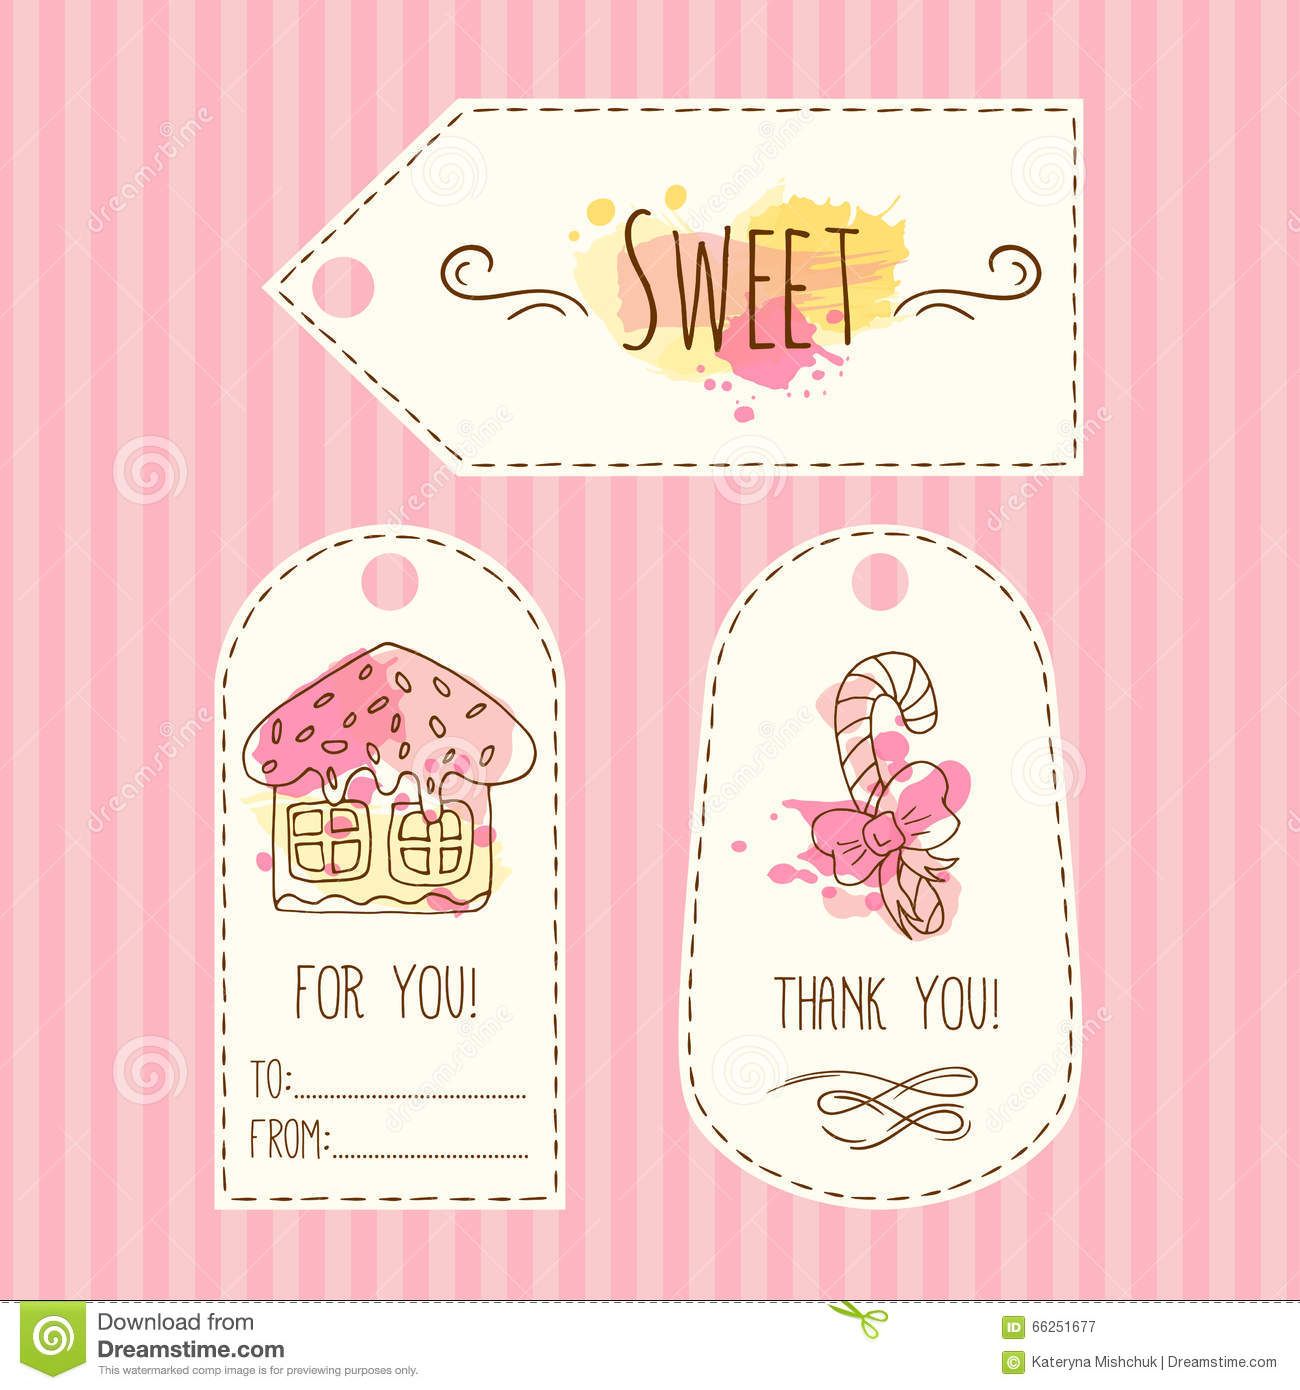 800+ vectors, stock photos & psd files. Tags With Cookie Illustration Vector Hand Drawn Labels Set With Watercolor Splashes Sweet Vector Ginger House Stock Vector Illustration Of Cream Pastry 66251677